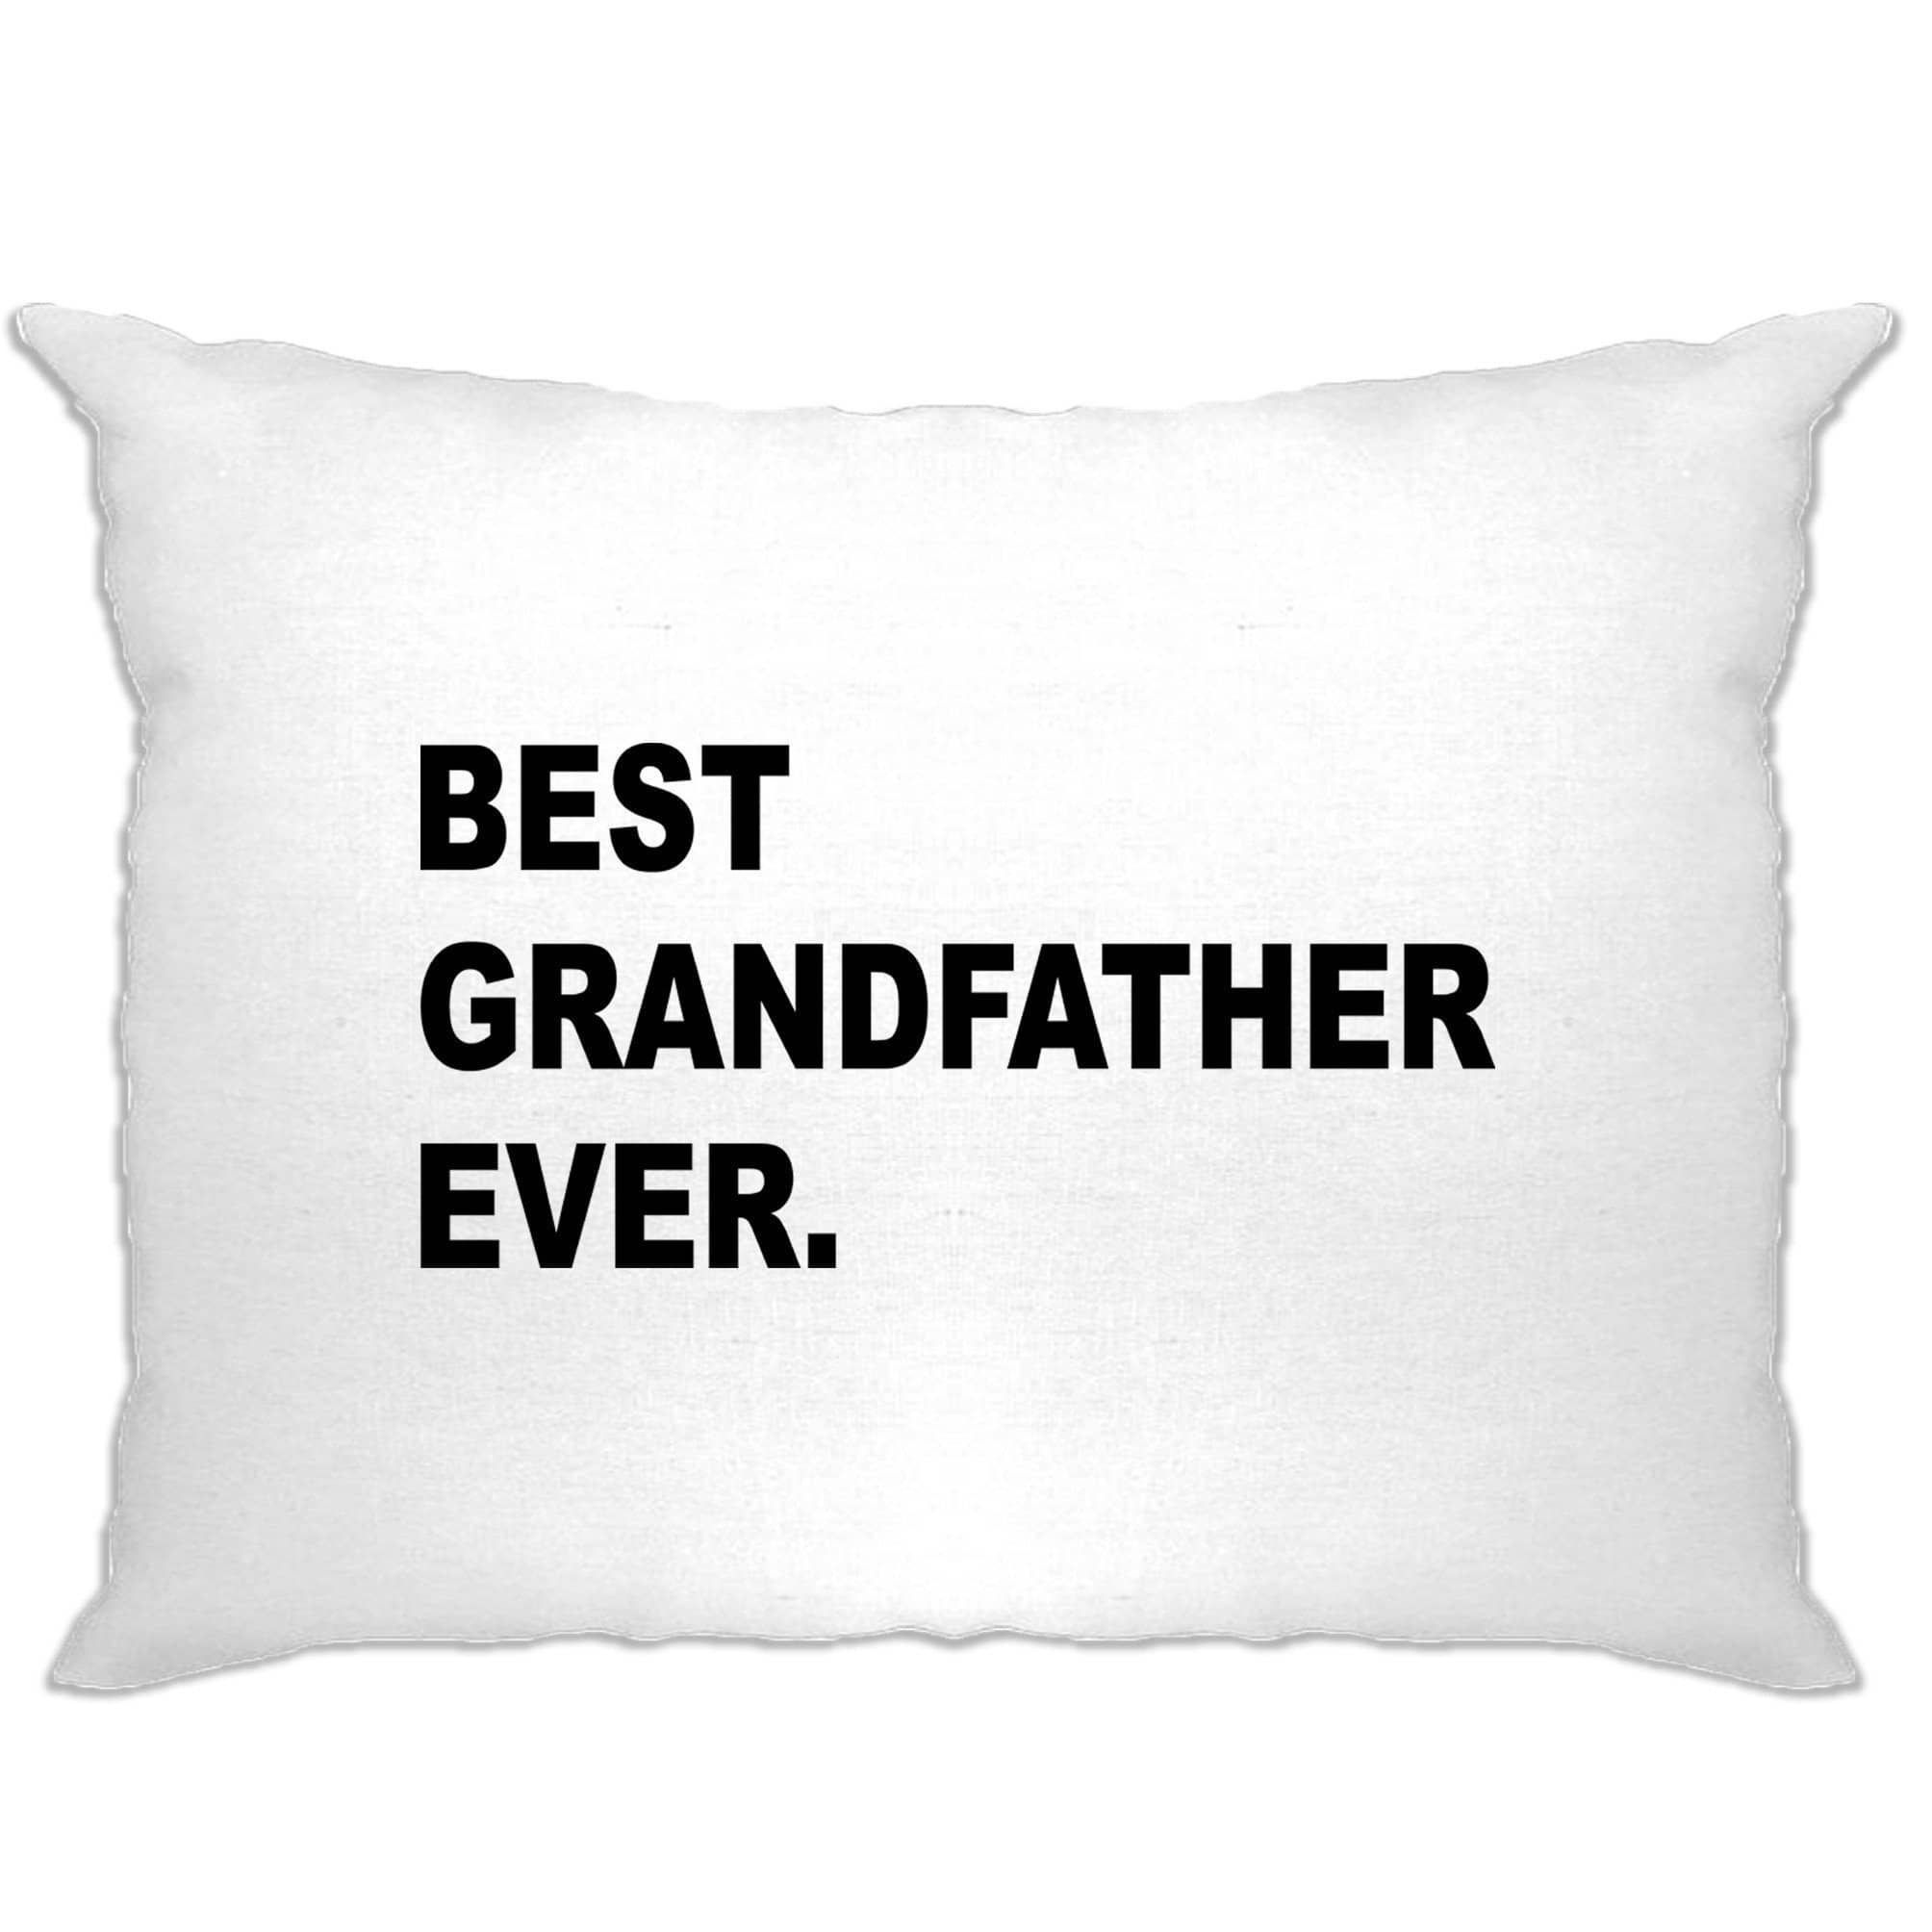 Best Grandfather Ever Pillow Case Parent Family Slogan